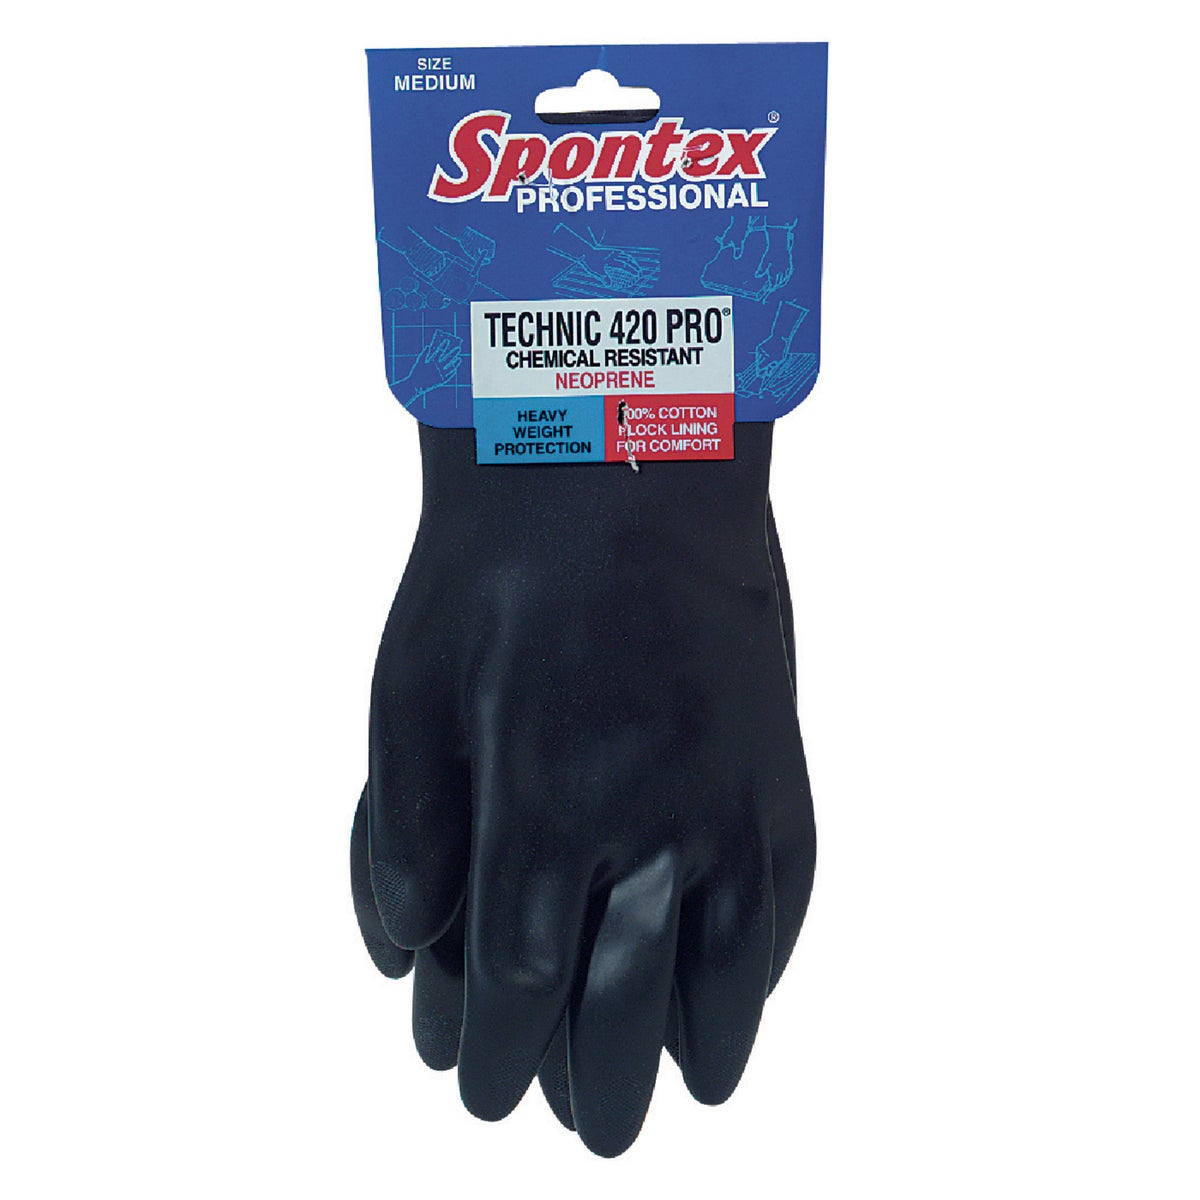 LARGE RUBBER GLOVES - 33546 by Lehigh Spontex